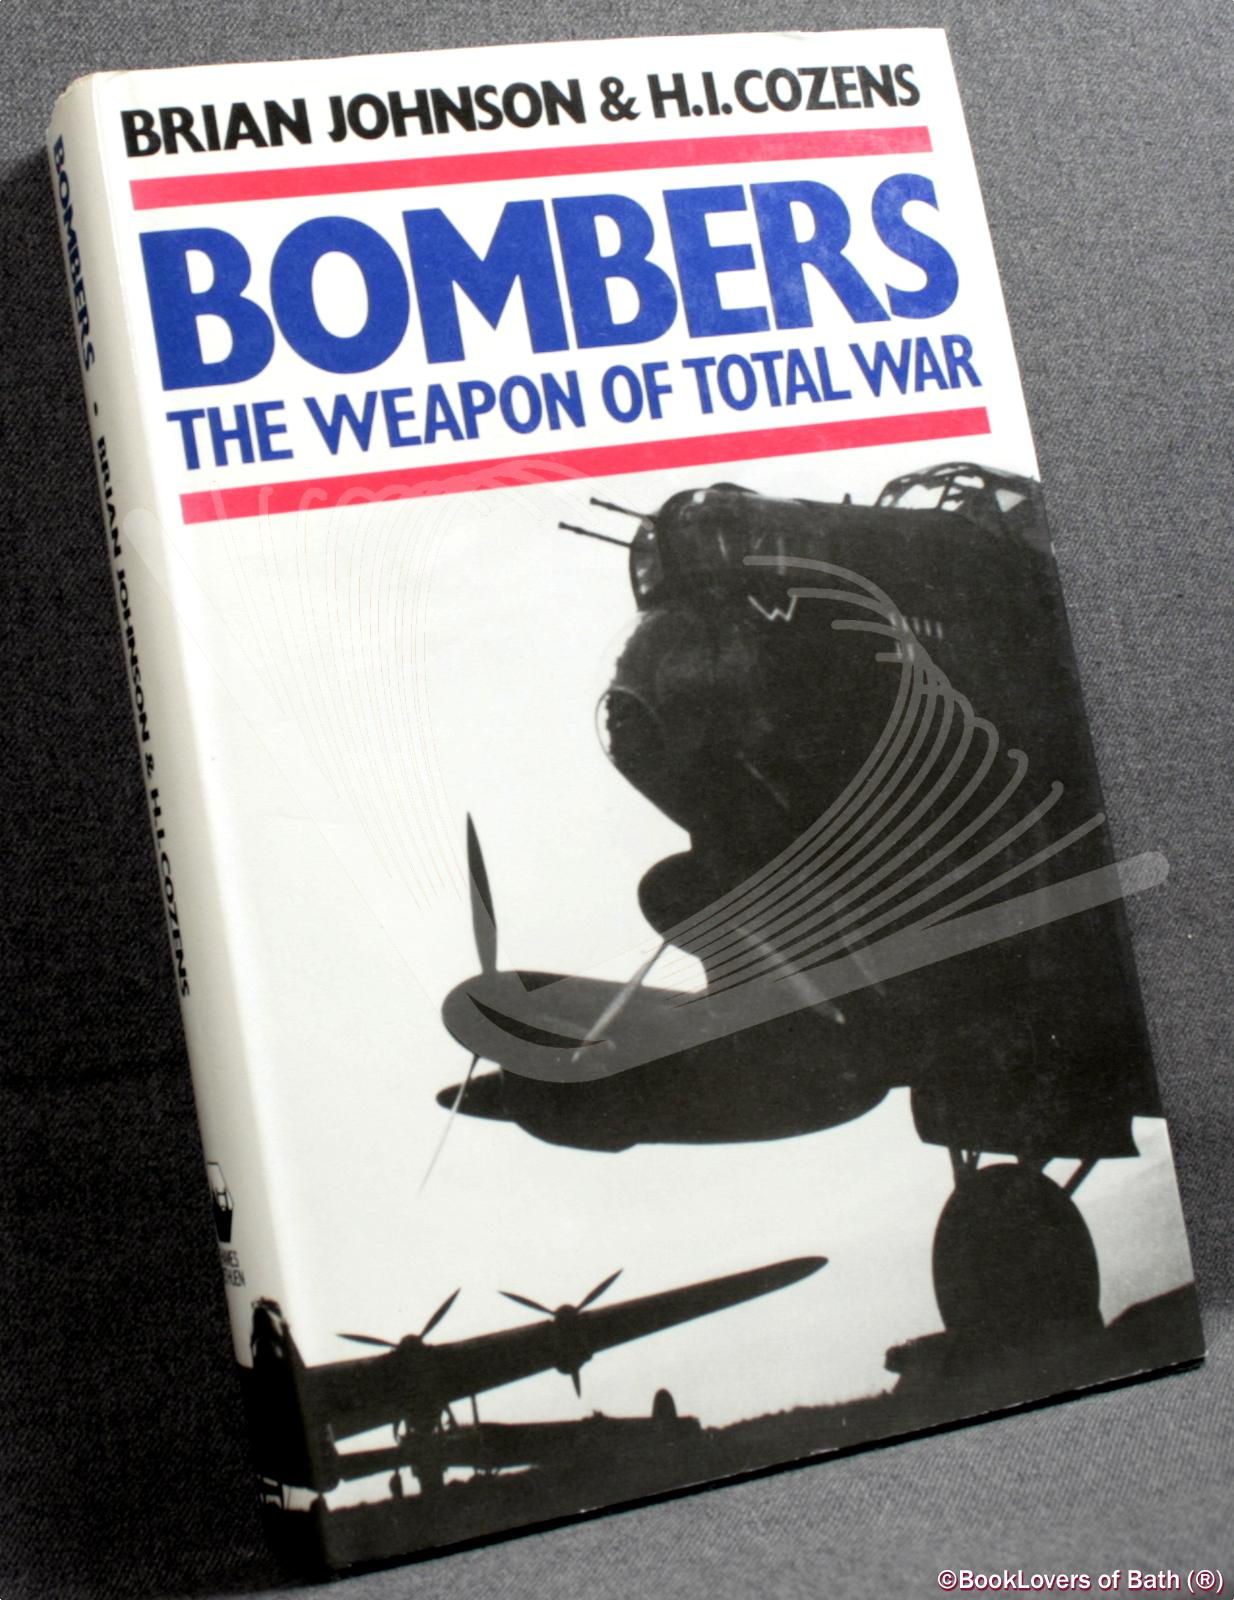 Bombers: The Weapon of Total War - Brian Johnson & H. I. Cozens